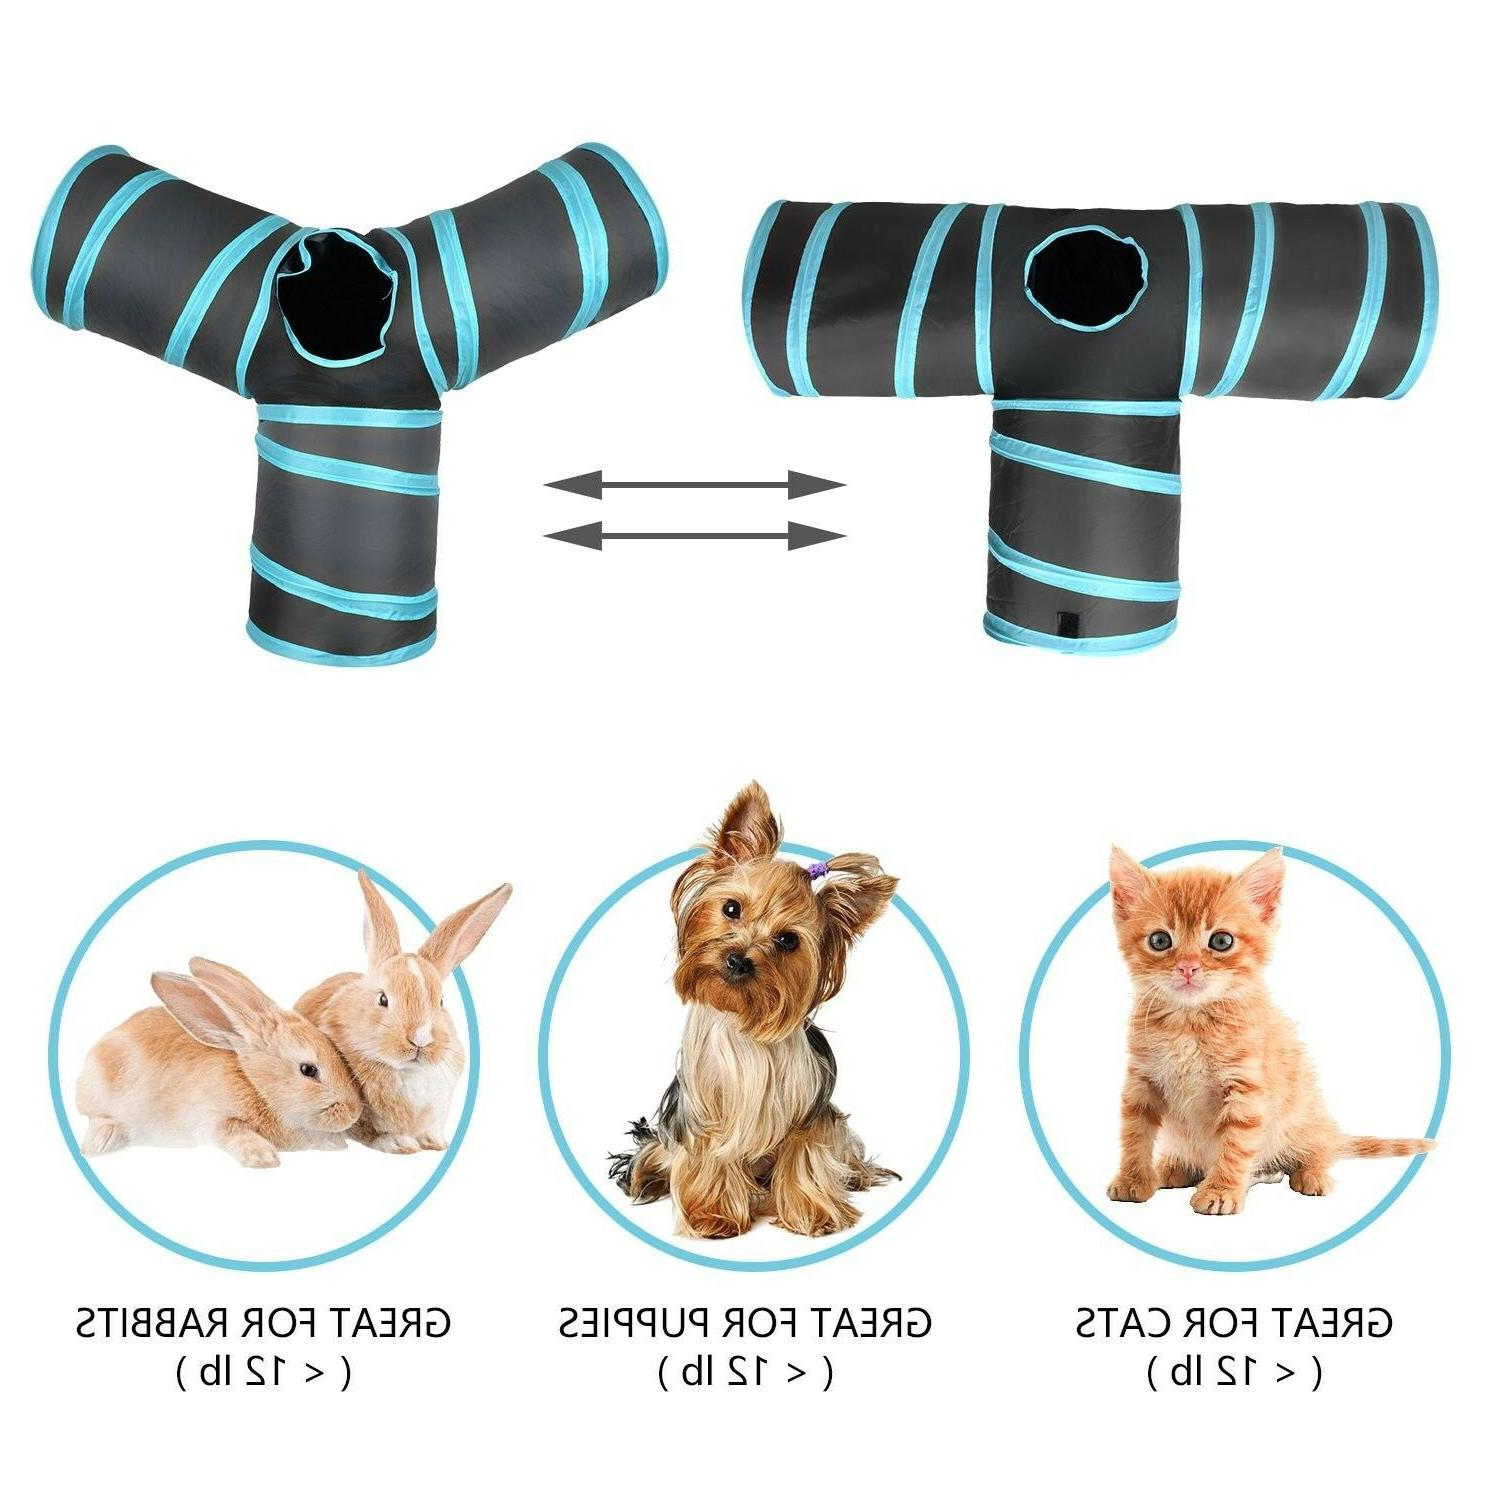 3 Way Cat Tunnel, Creaker Collapsible Pet Toy with Ball for